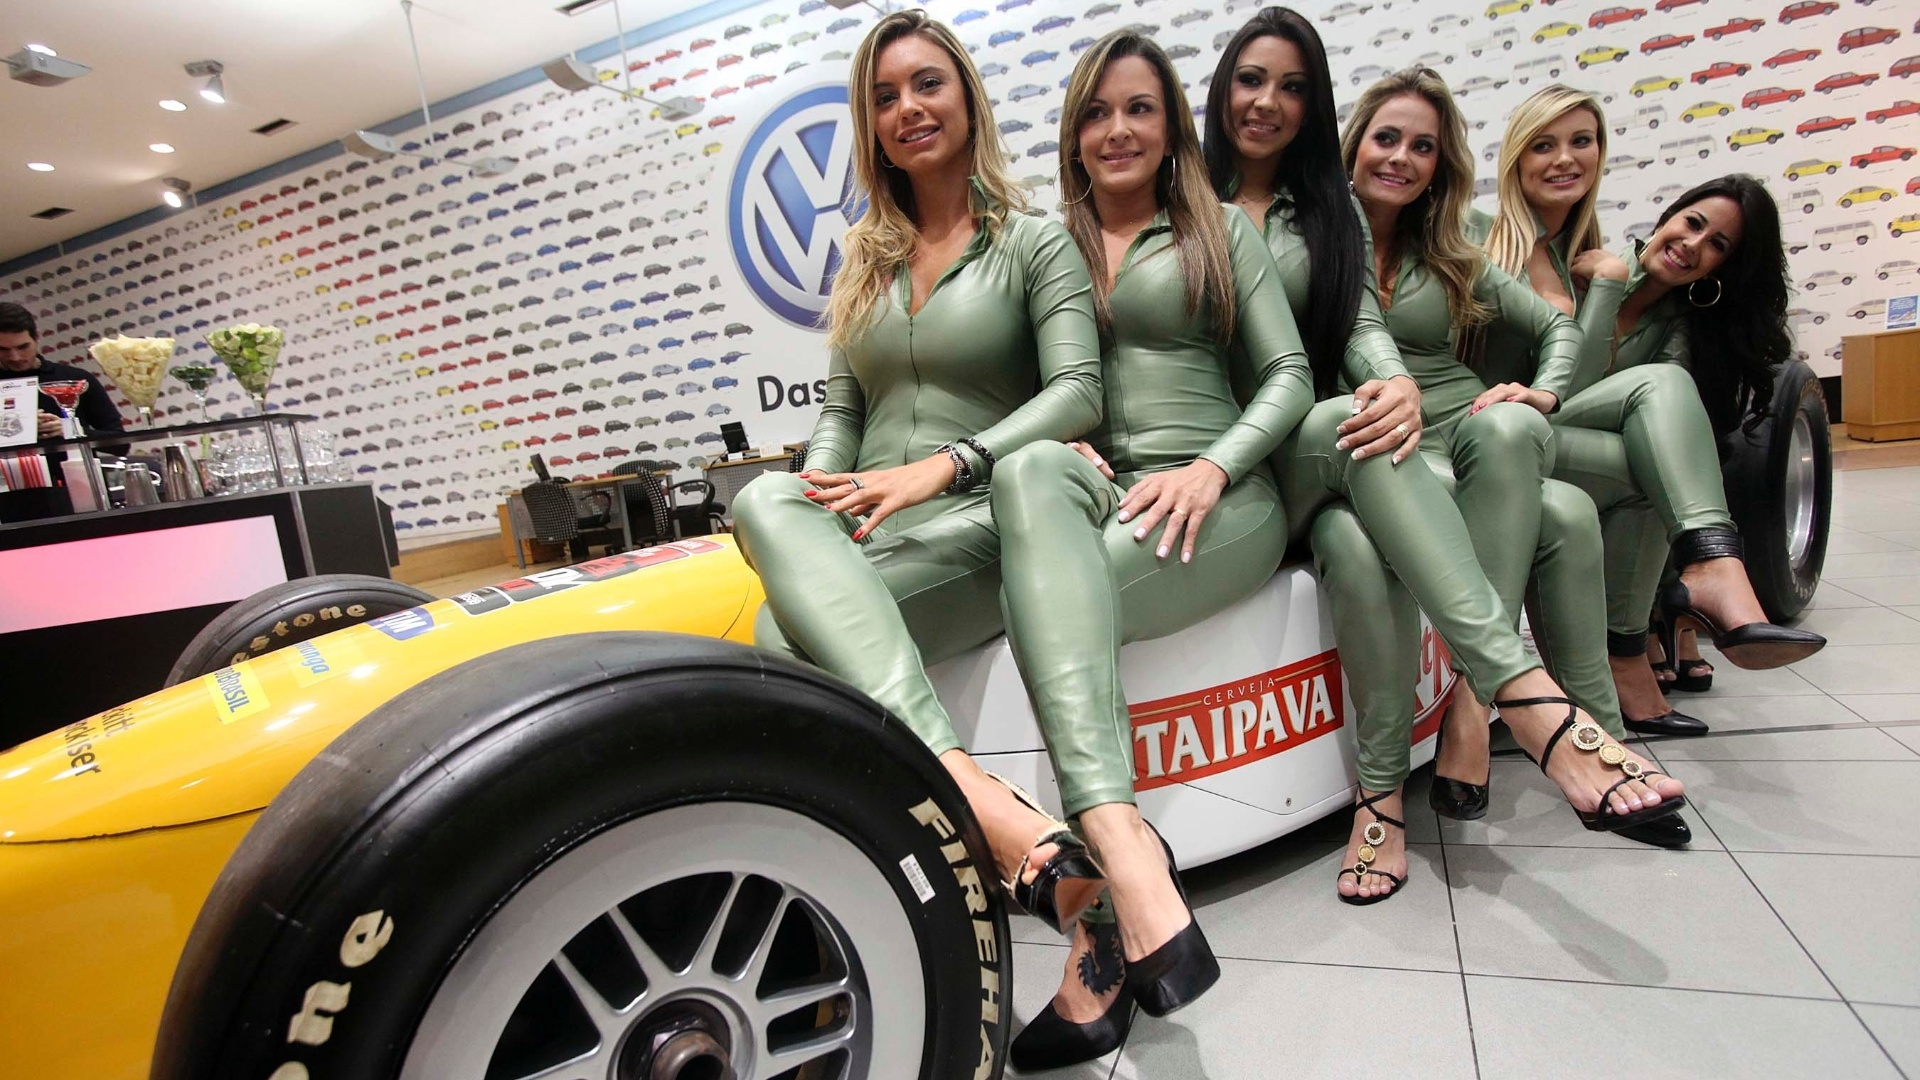 Candidatas a gata da Frmula Indy posam em carro da categoria